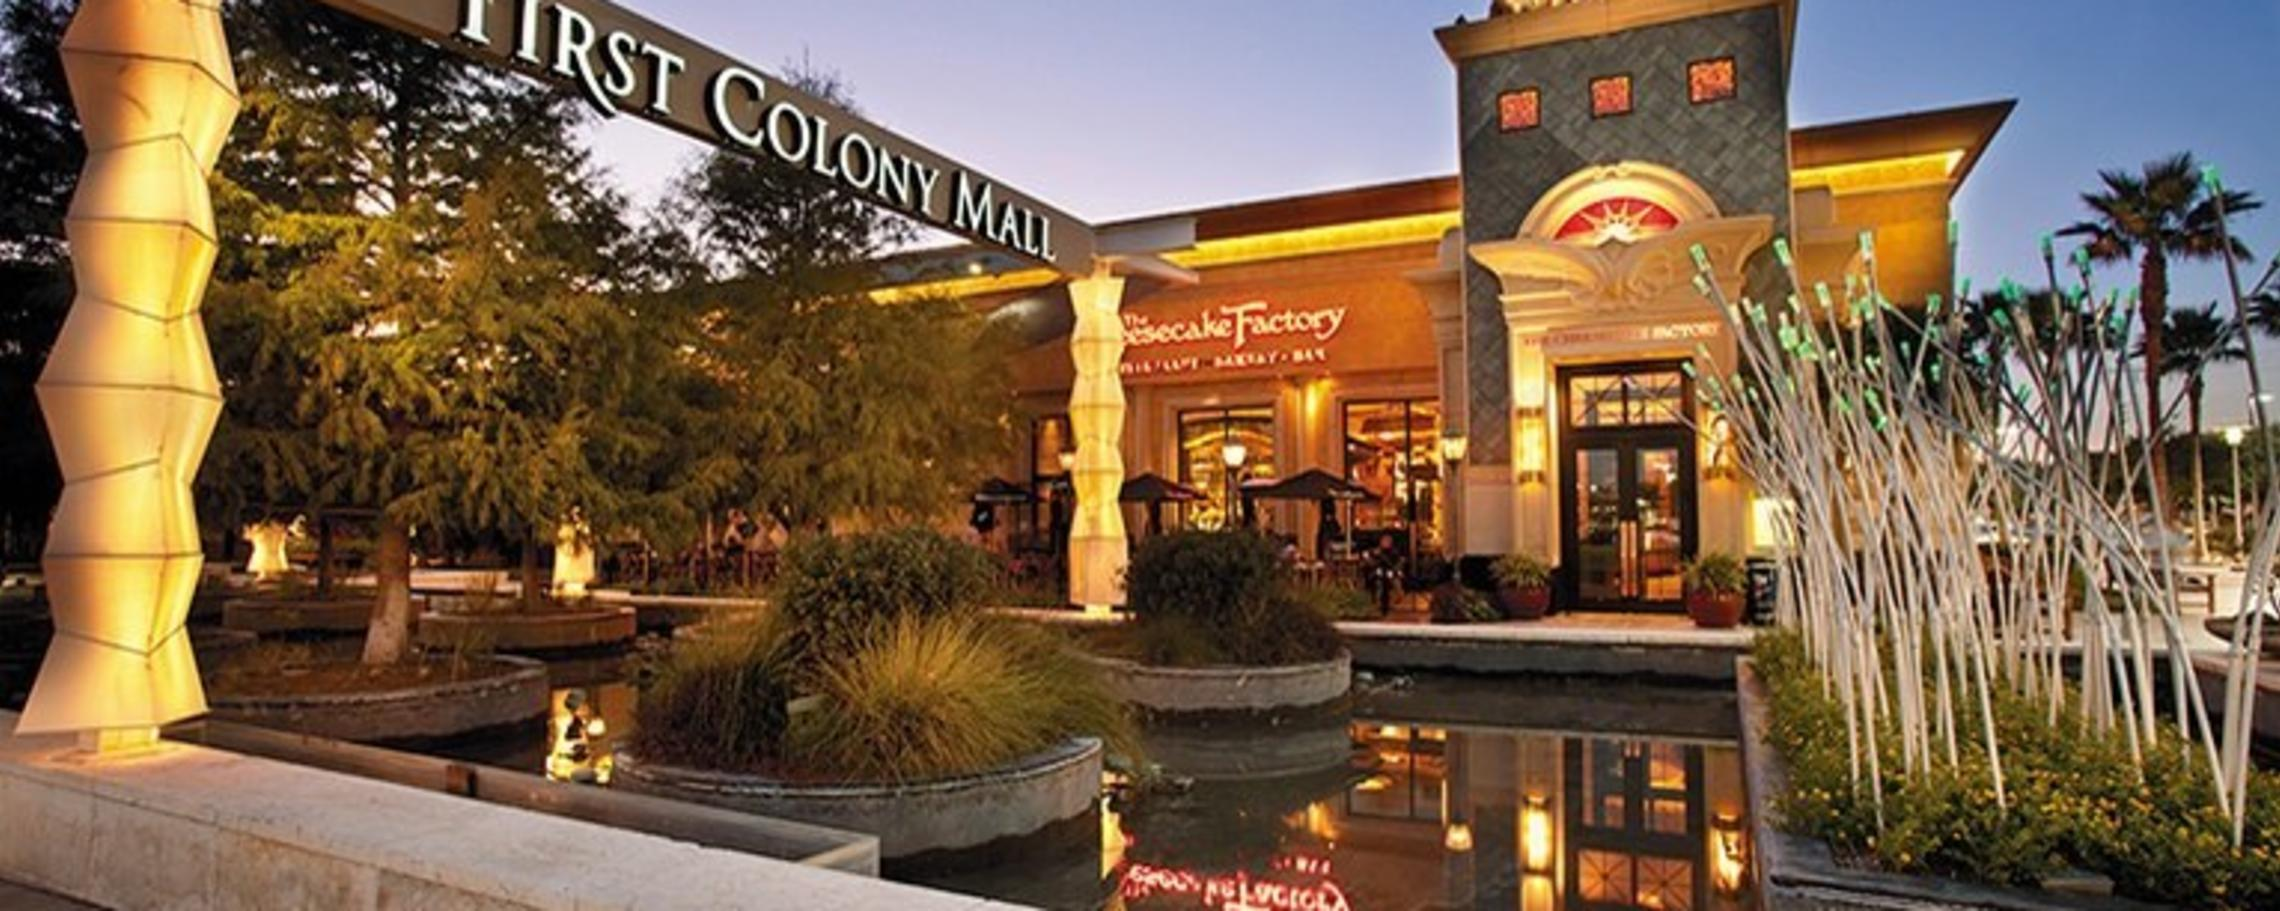 First Colony Mall At Night Cheesecake Factory